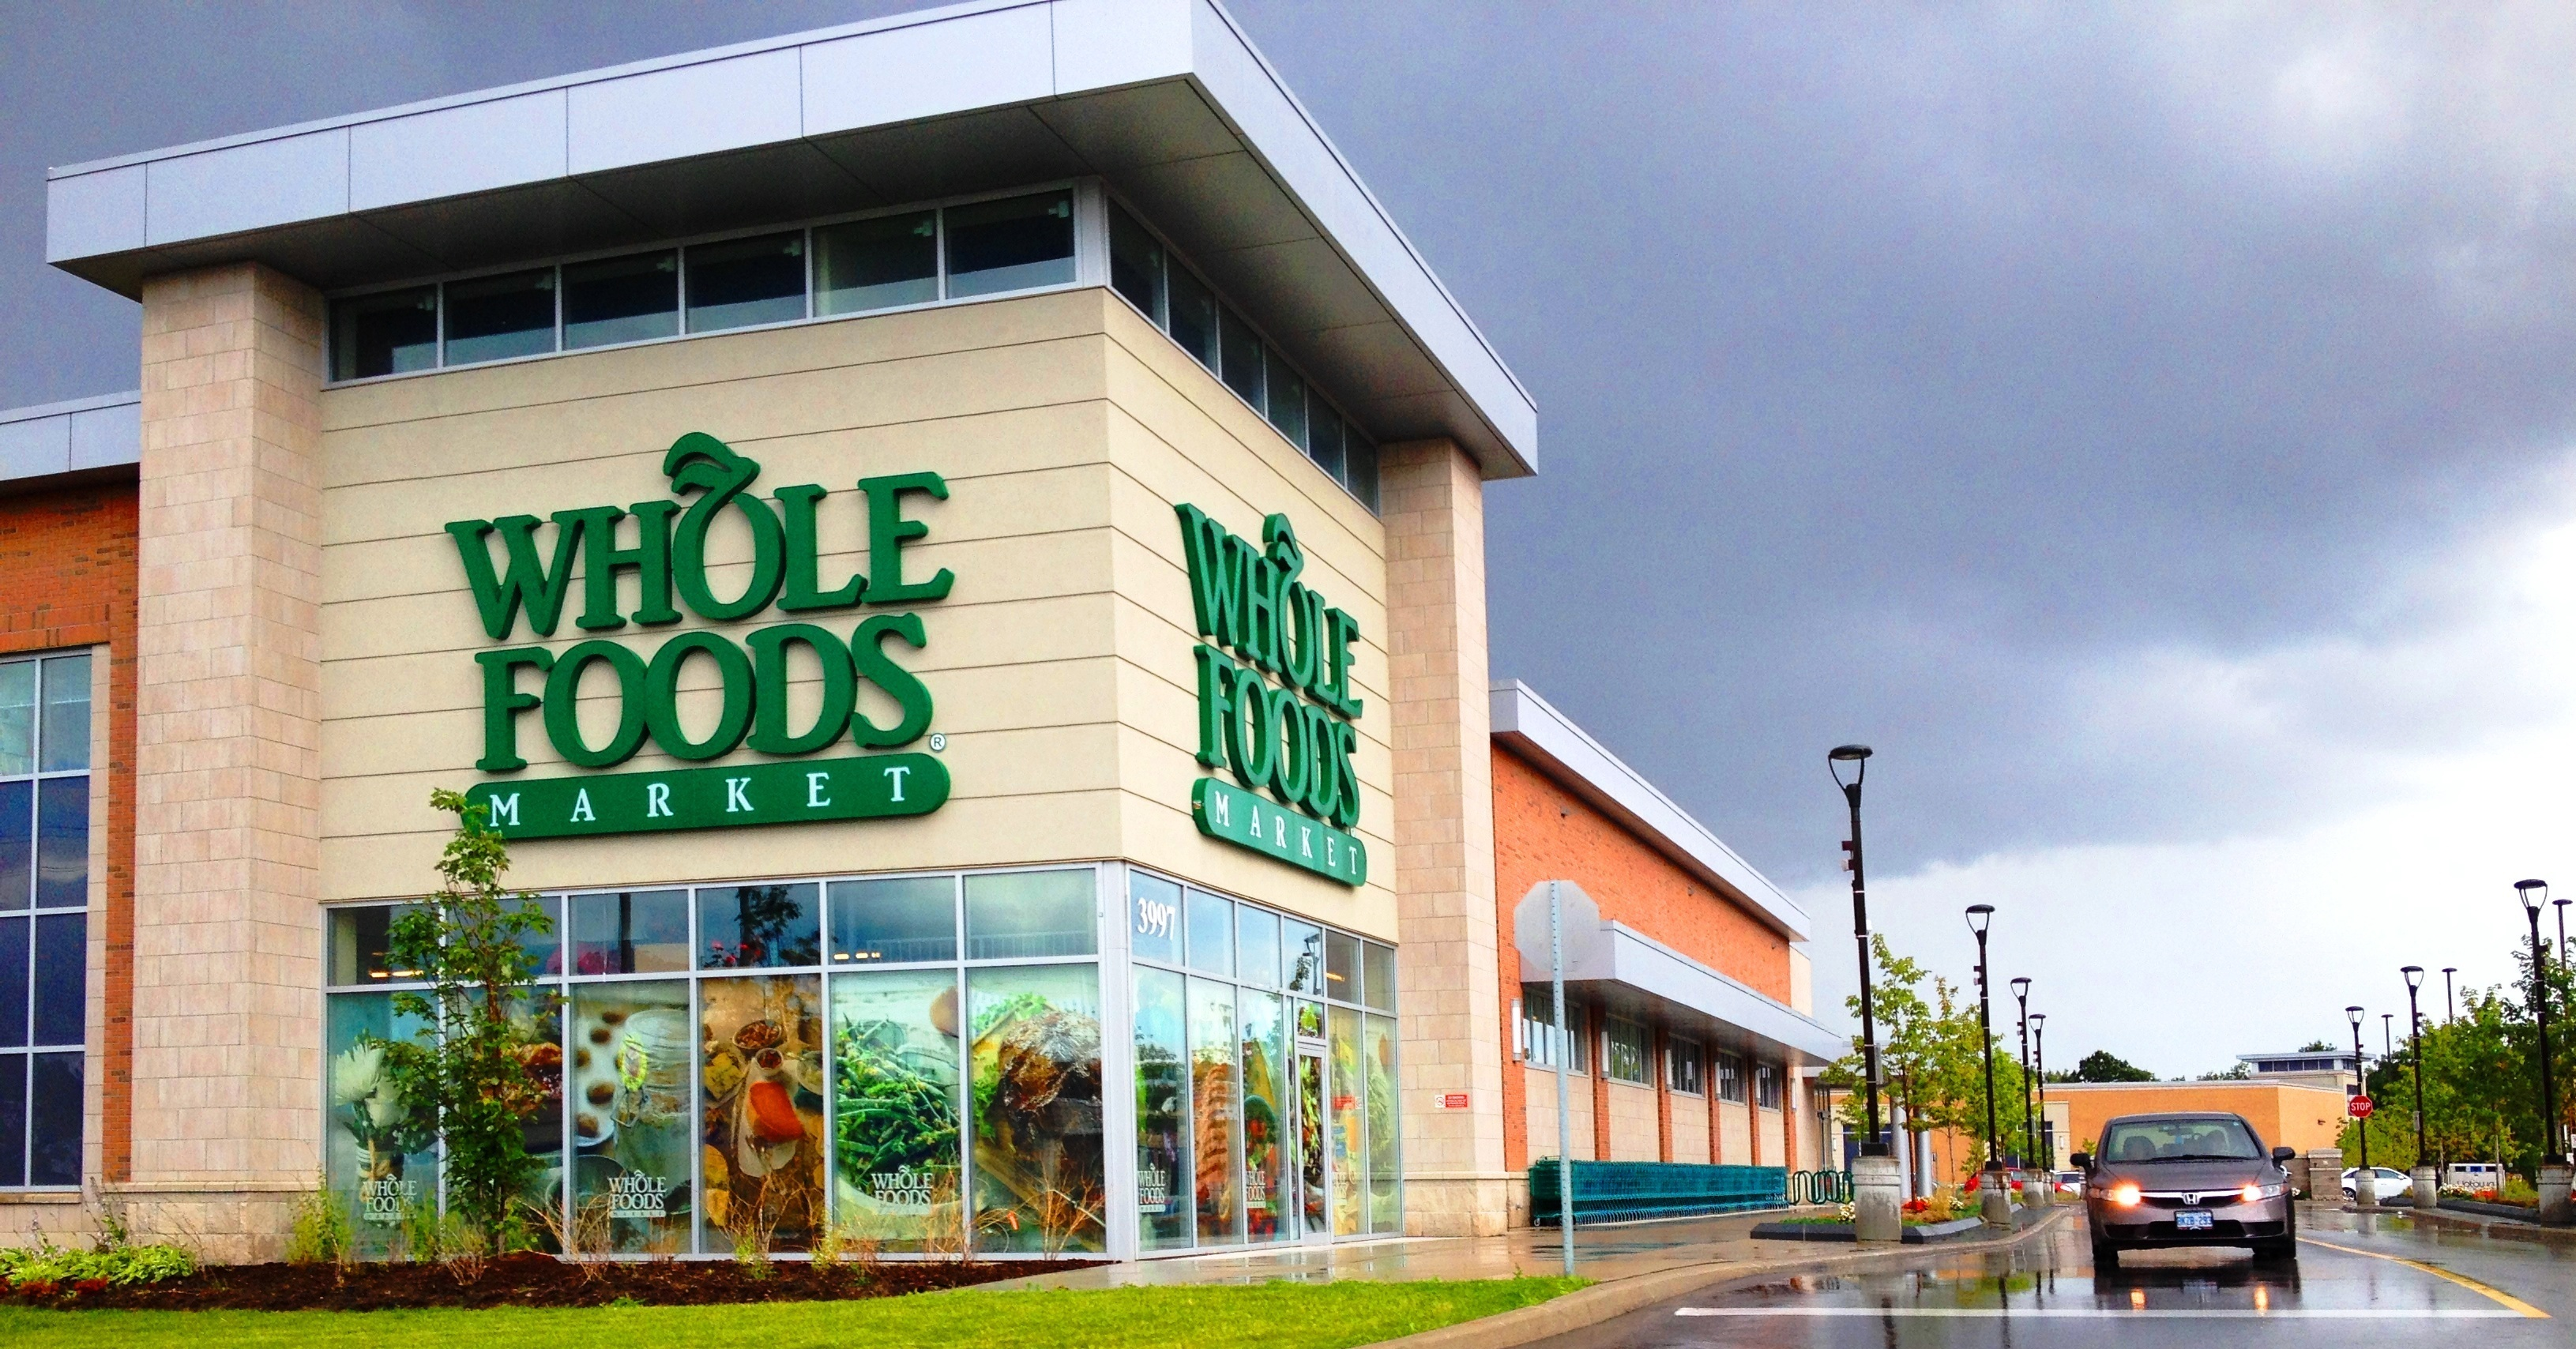 Is Your Home Near One of These Stores?